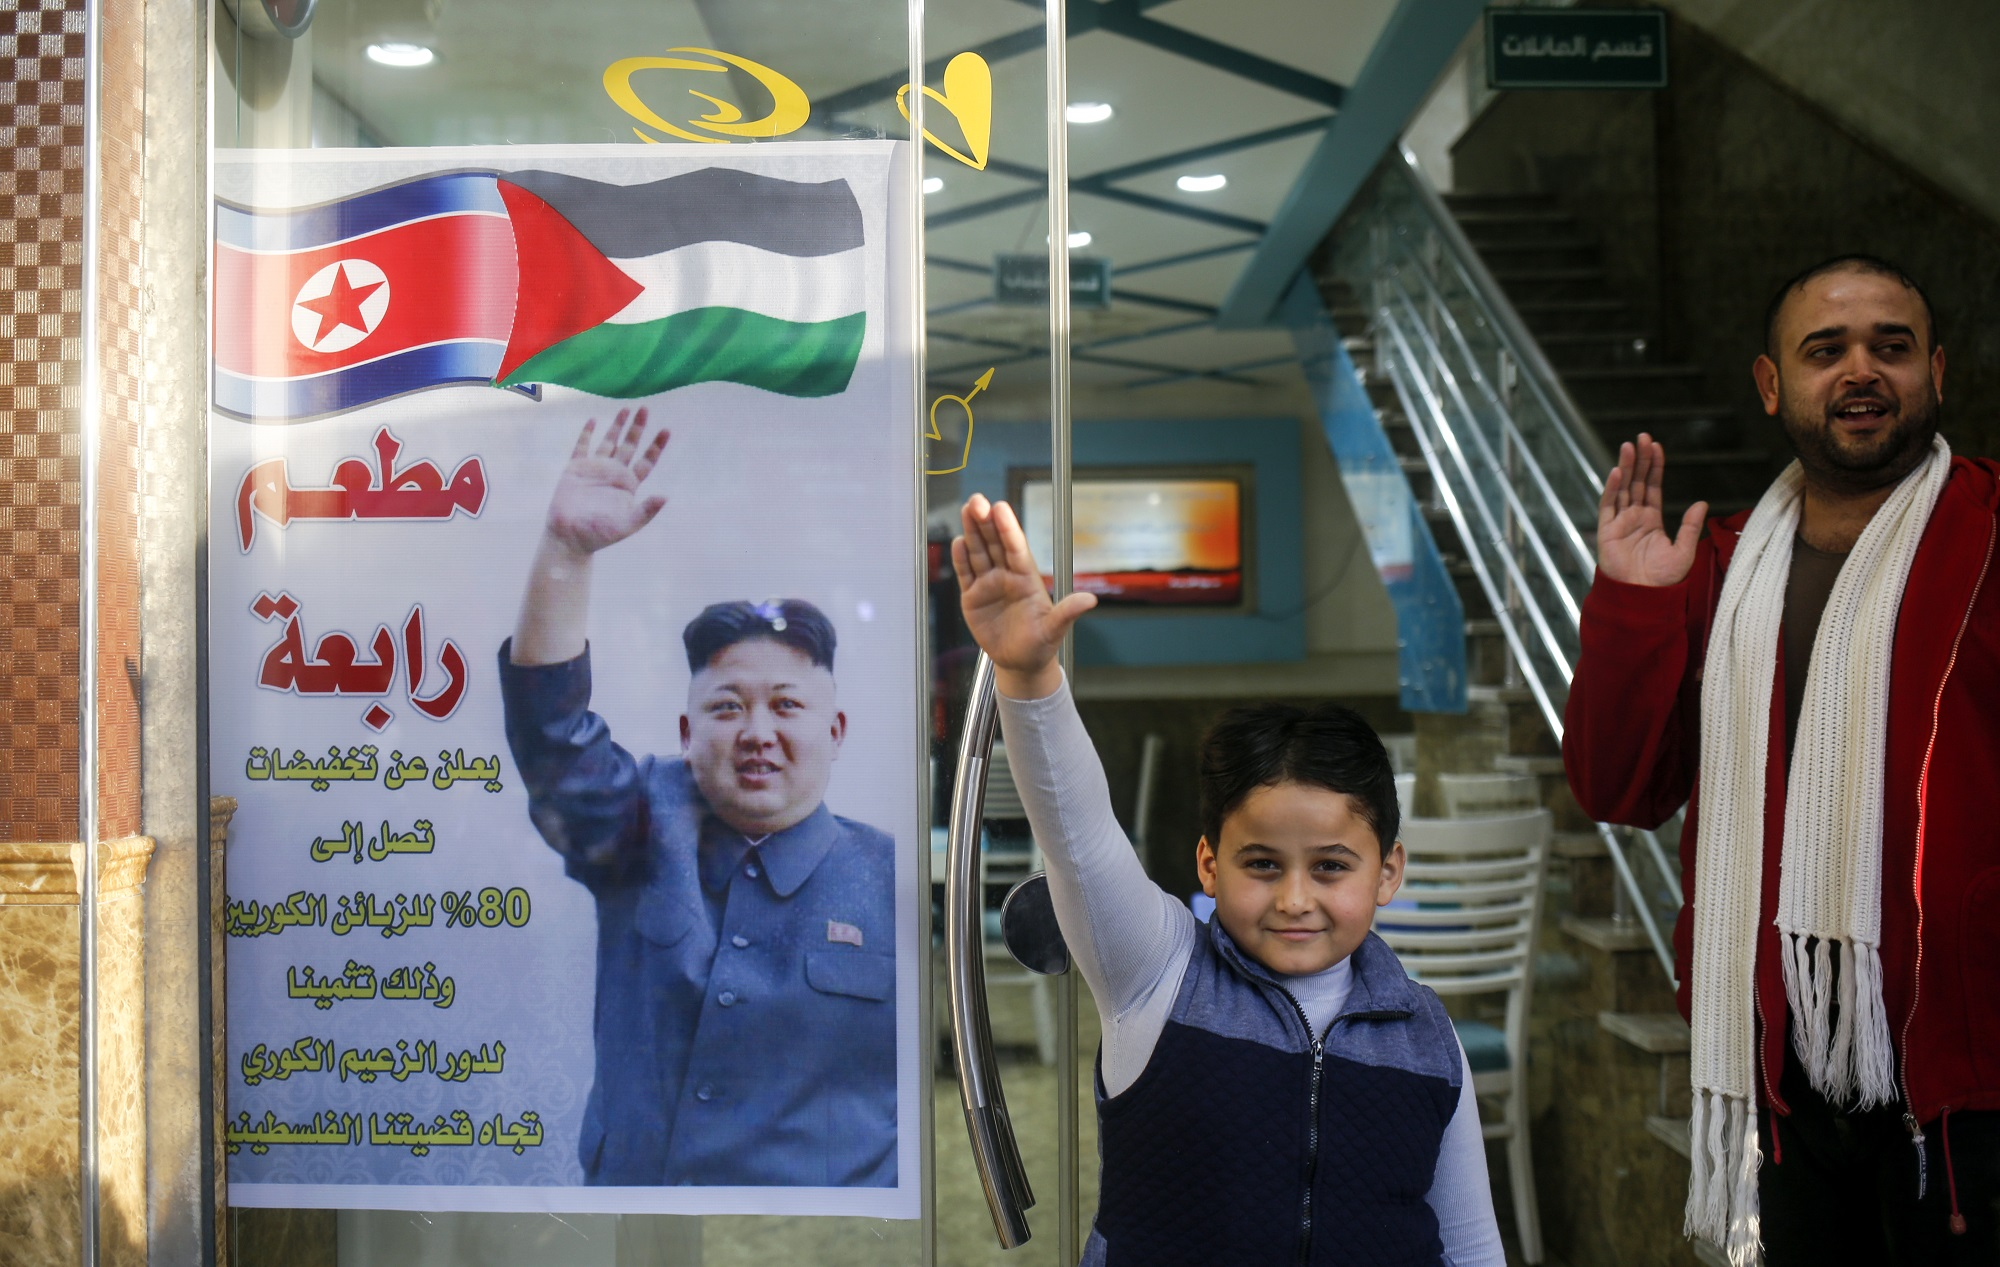 WEB_PHOTO_GAZA_NORTHKOREA_191217